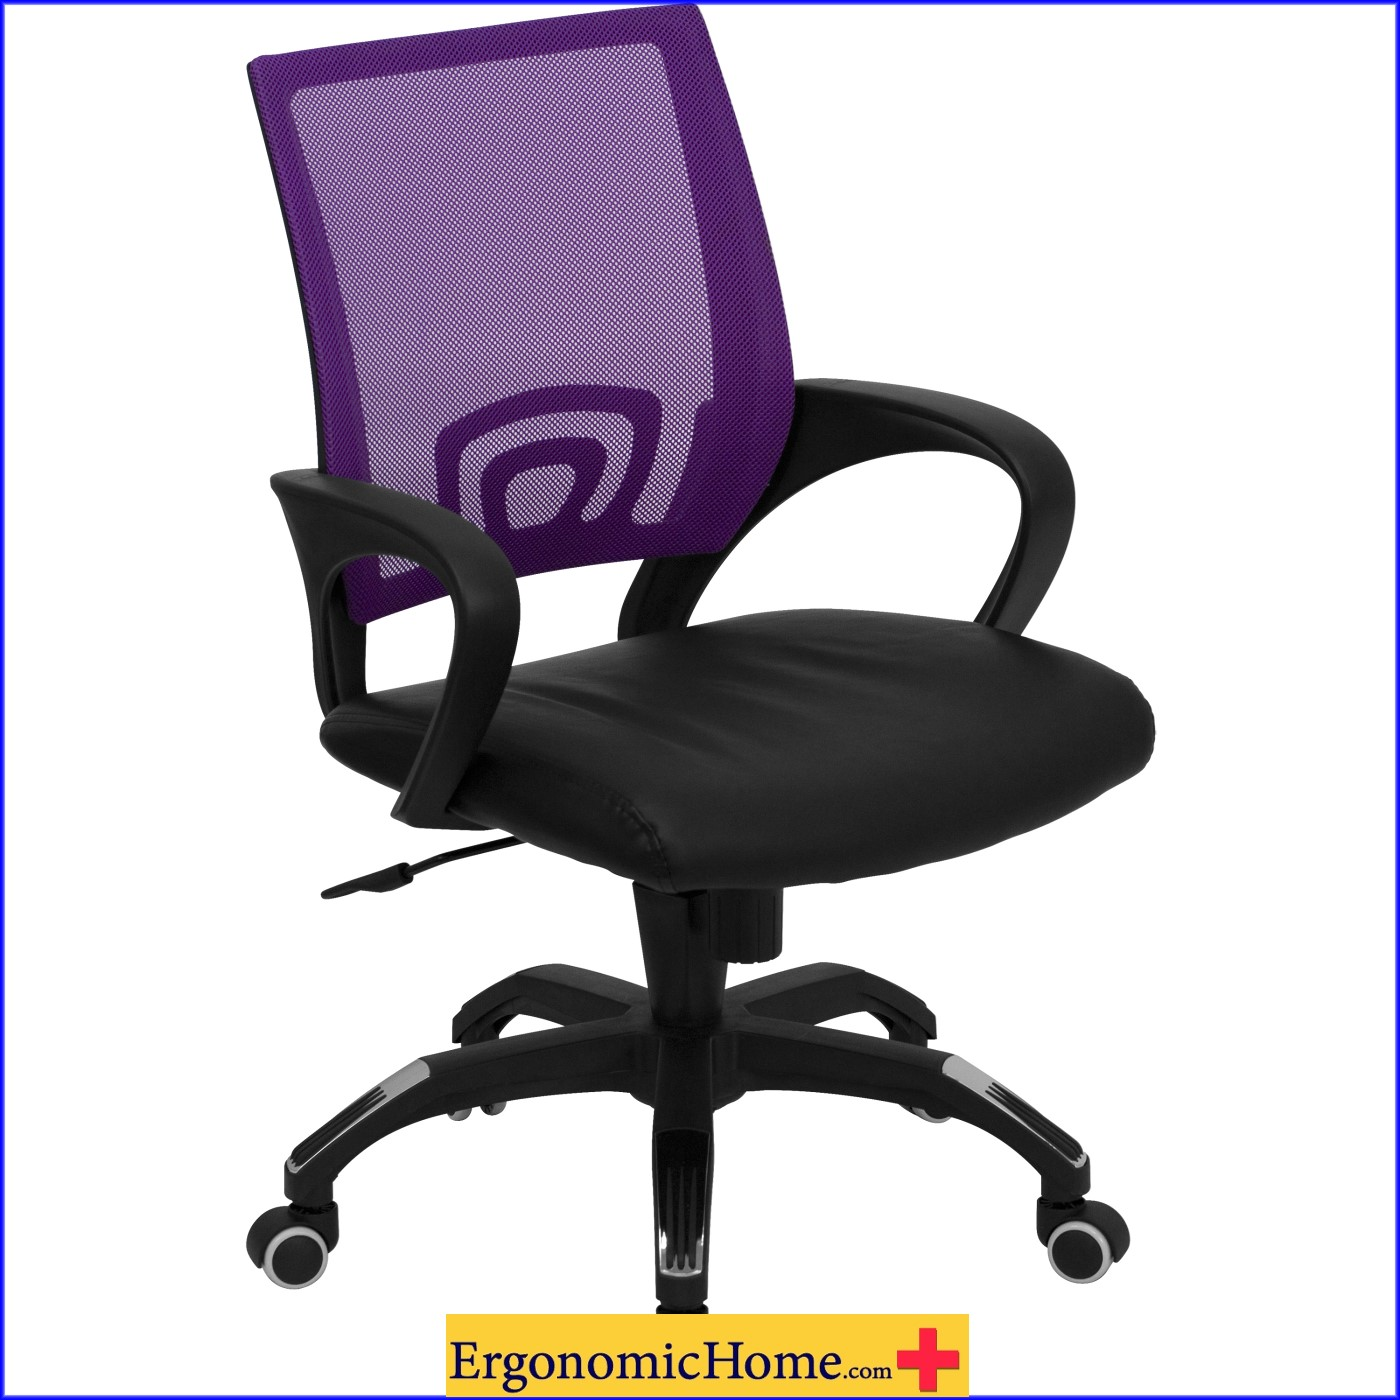 Mesh fice Chair puter Chair